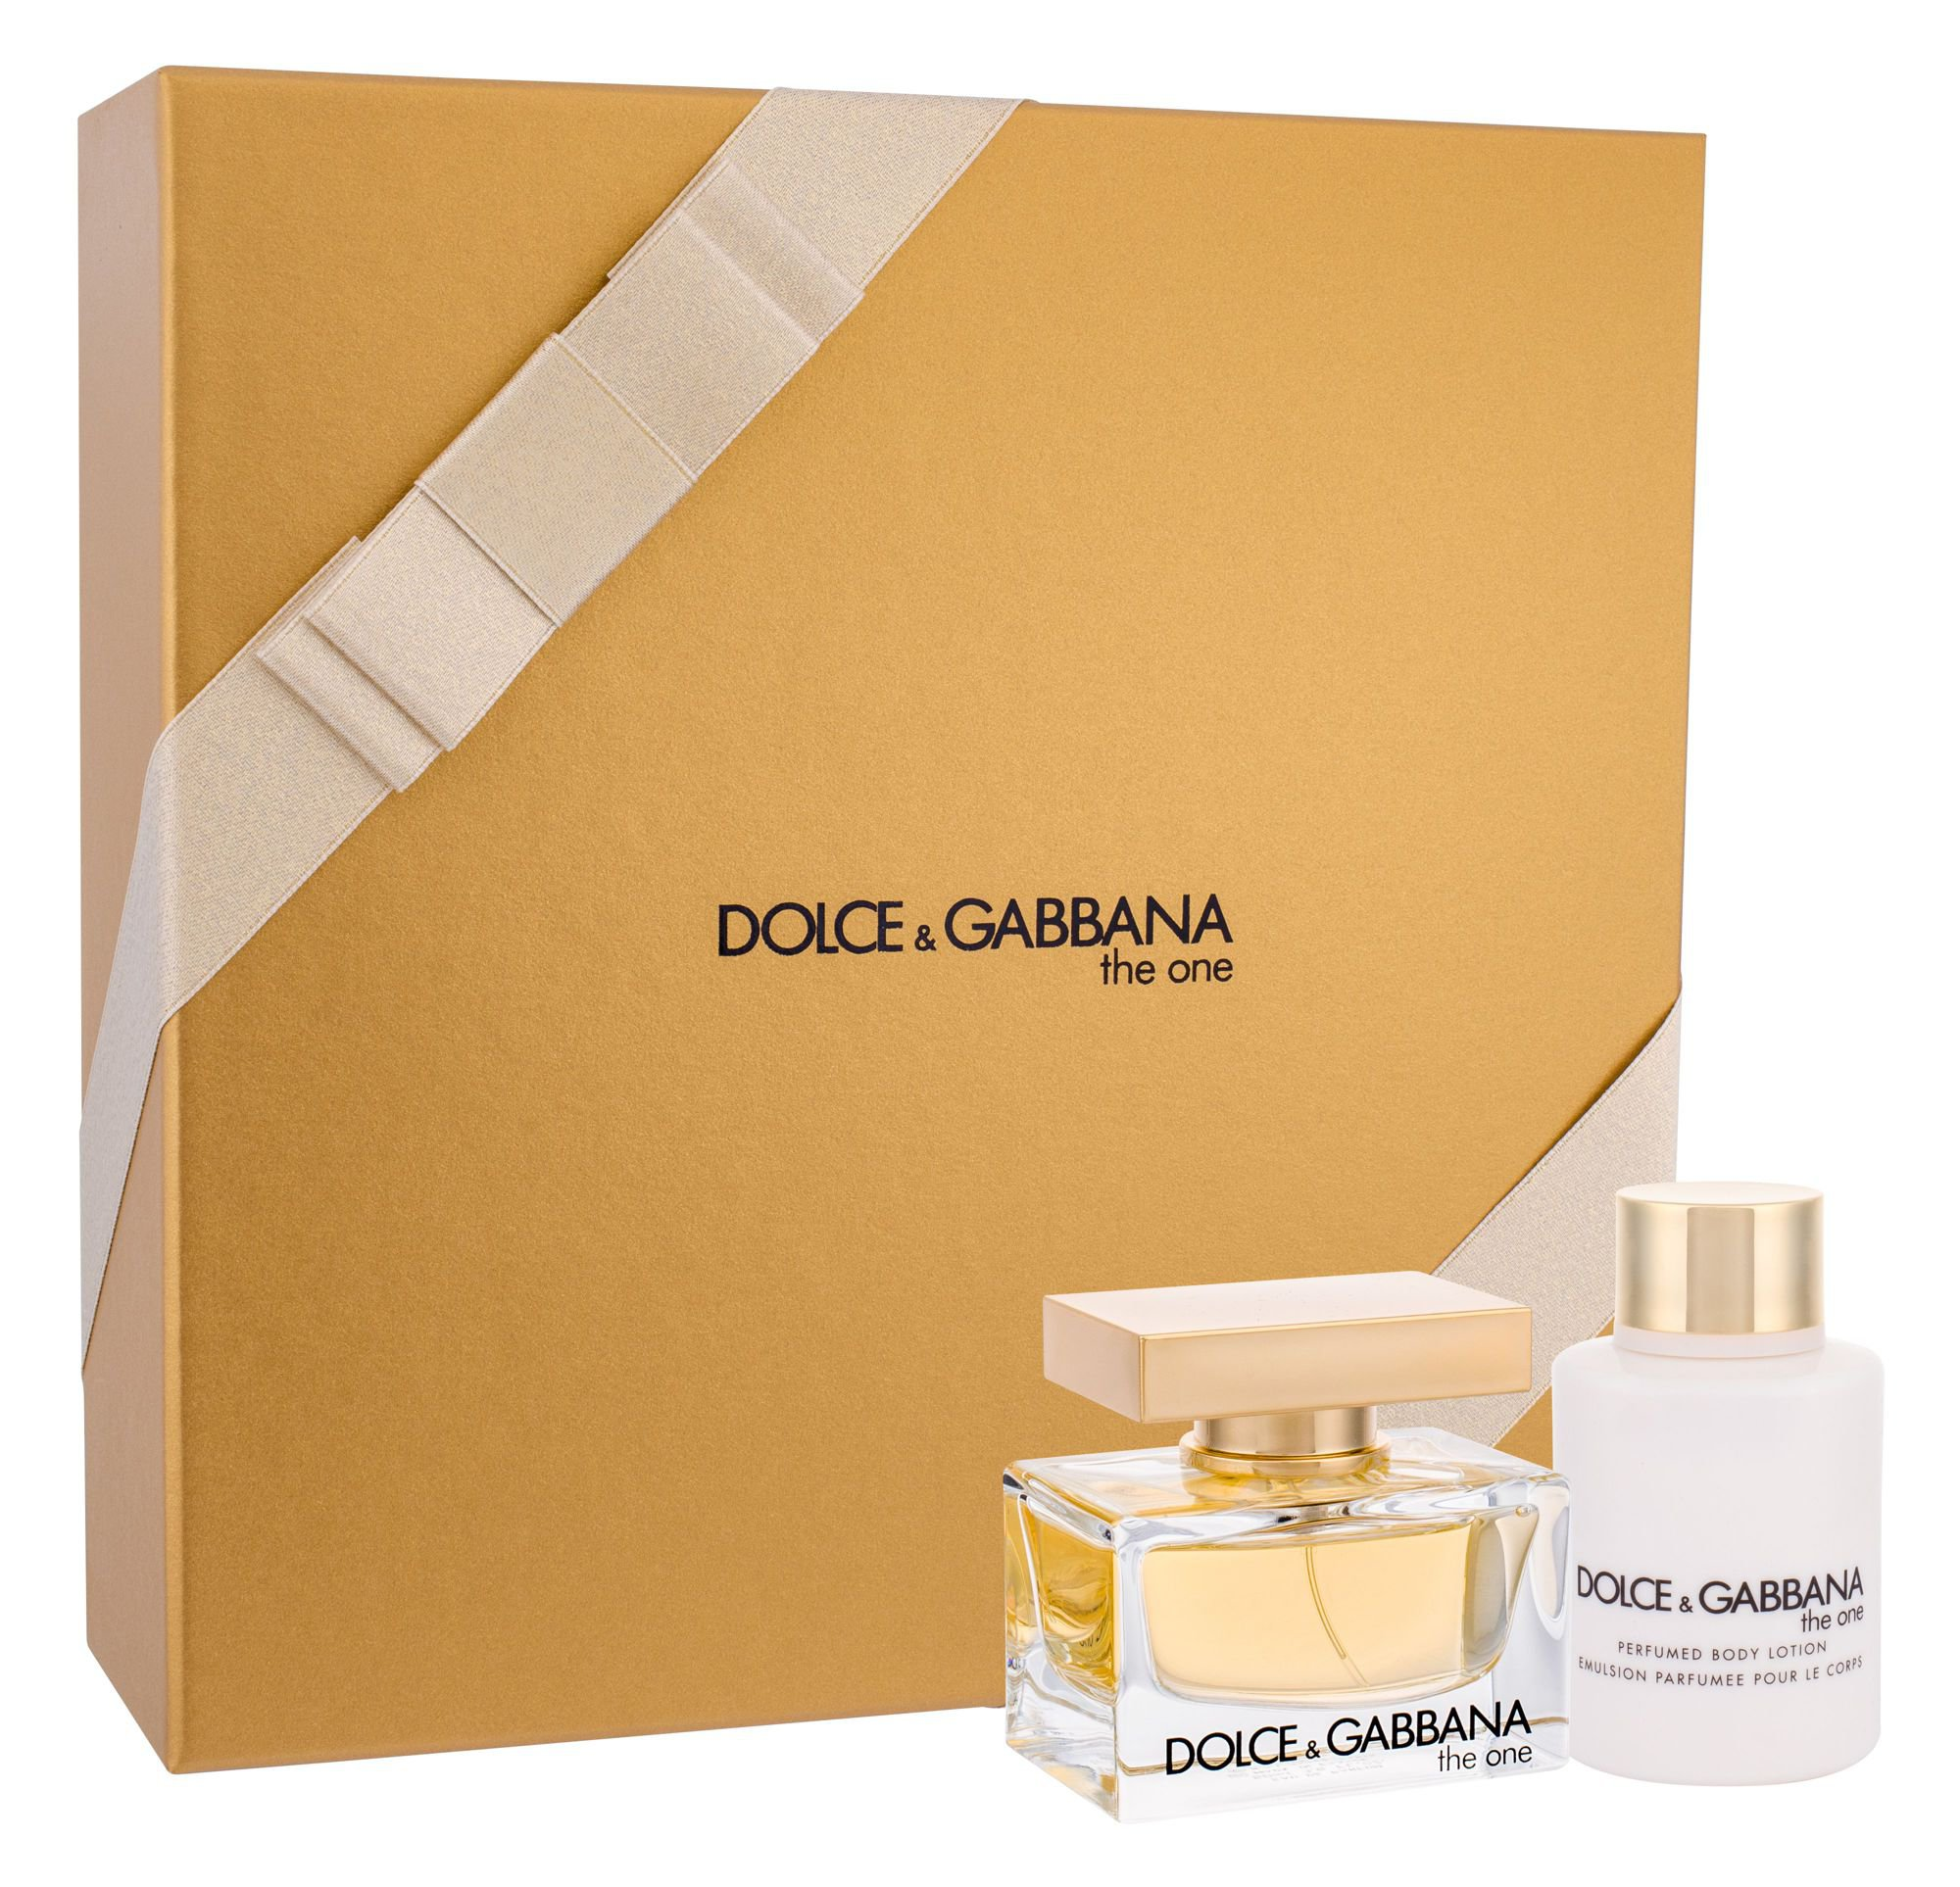 Dolce&Gabbana The One, parfumovaná voda 50 ml + telové mlieko 100 ml